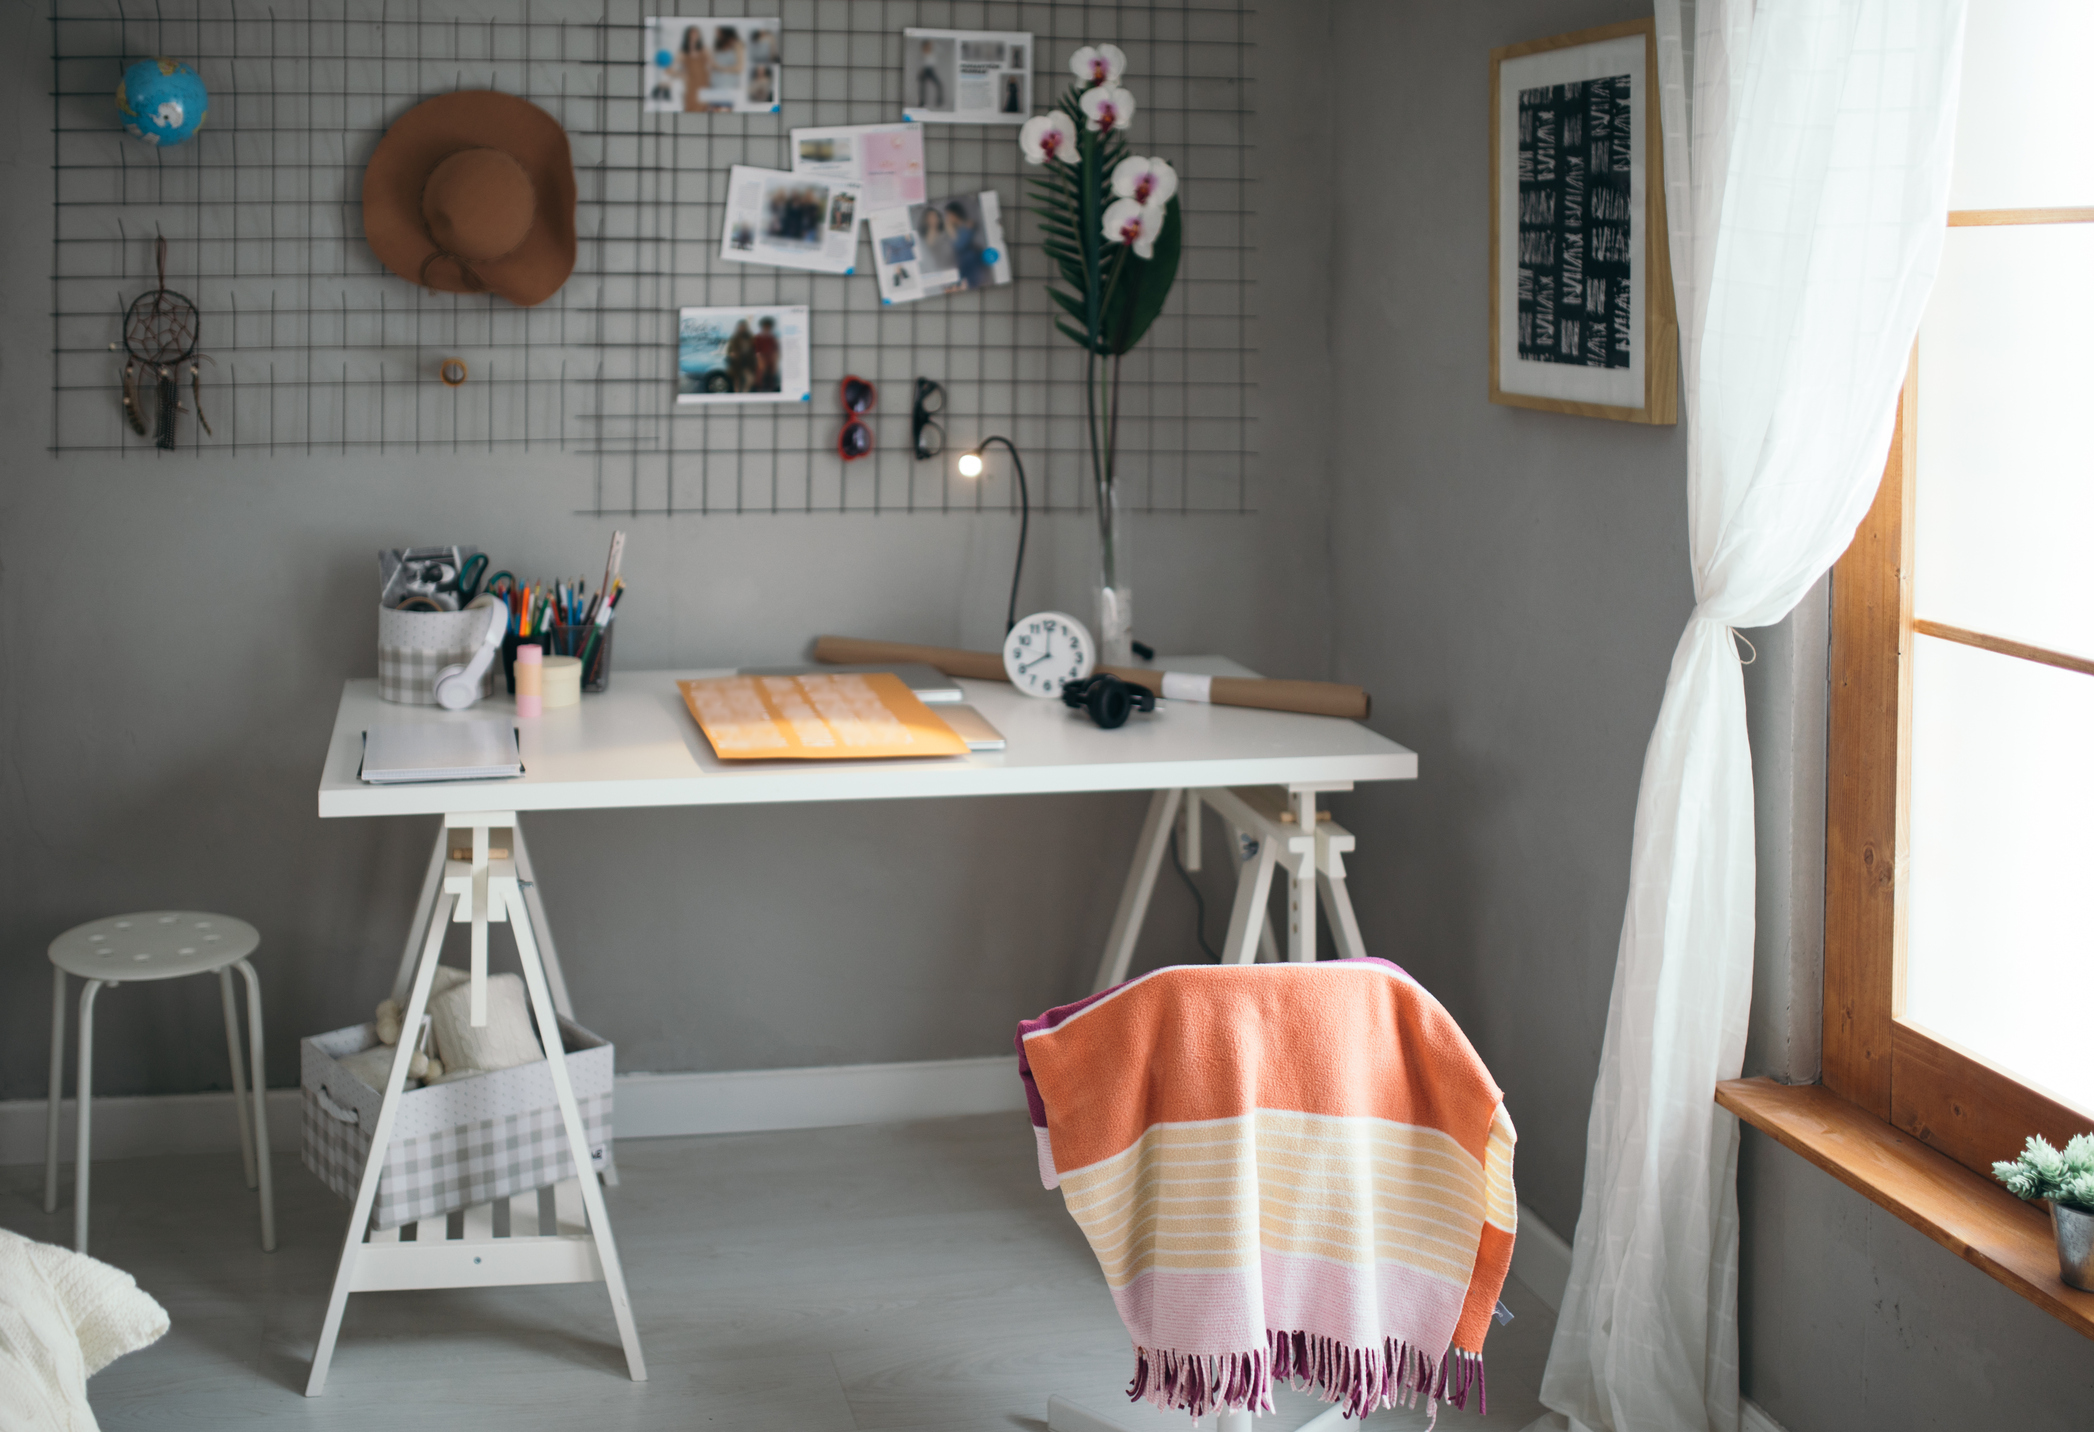 7 Dorm Room Goals for Your New Space